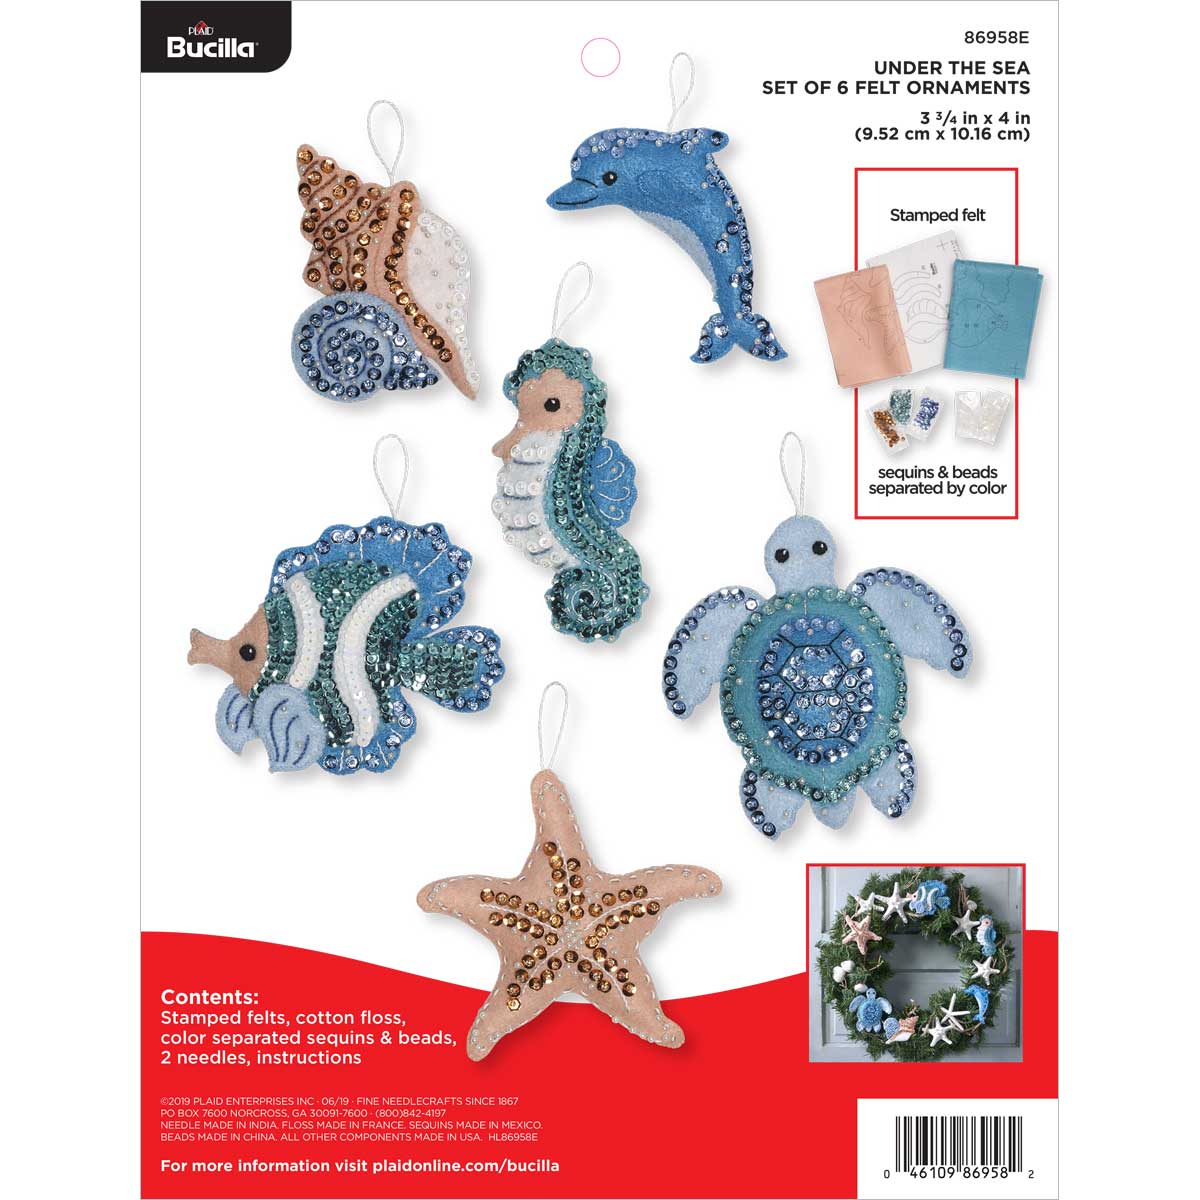 Bucilla ® Seasonal - Felt - Ornament Kits - Under the Sea - 86958E